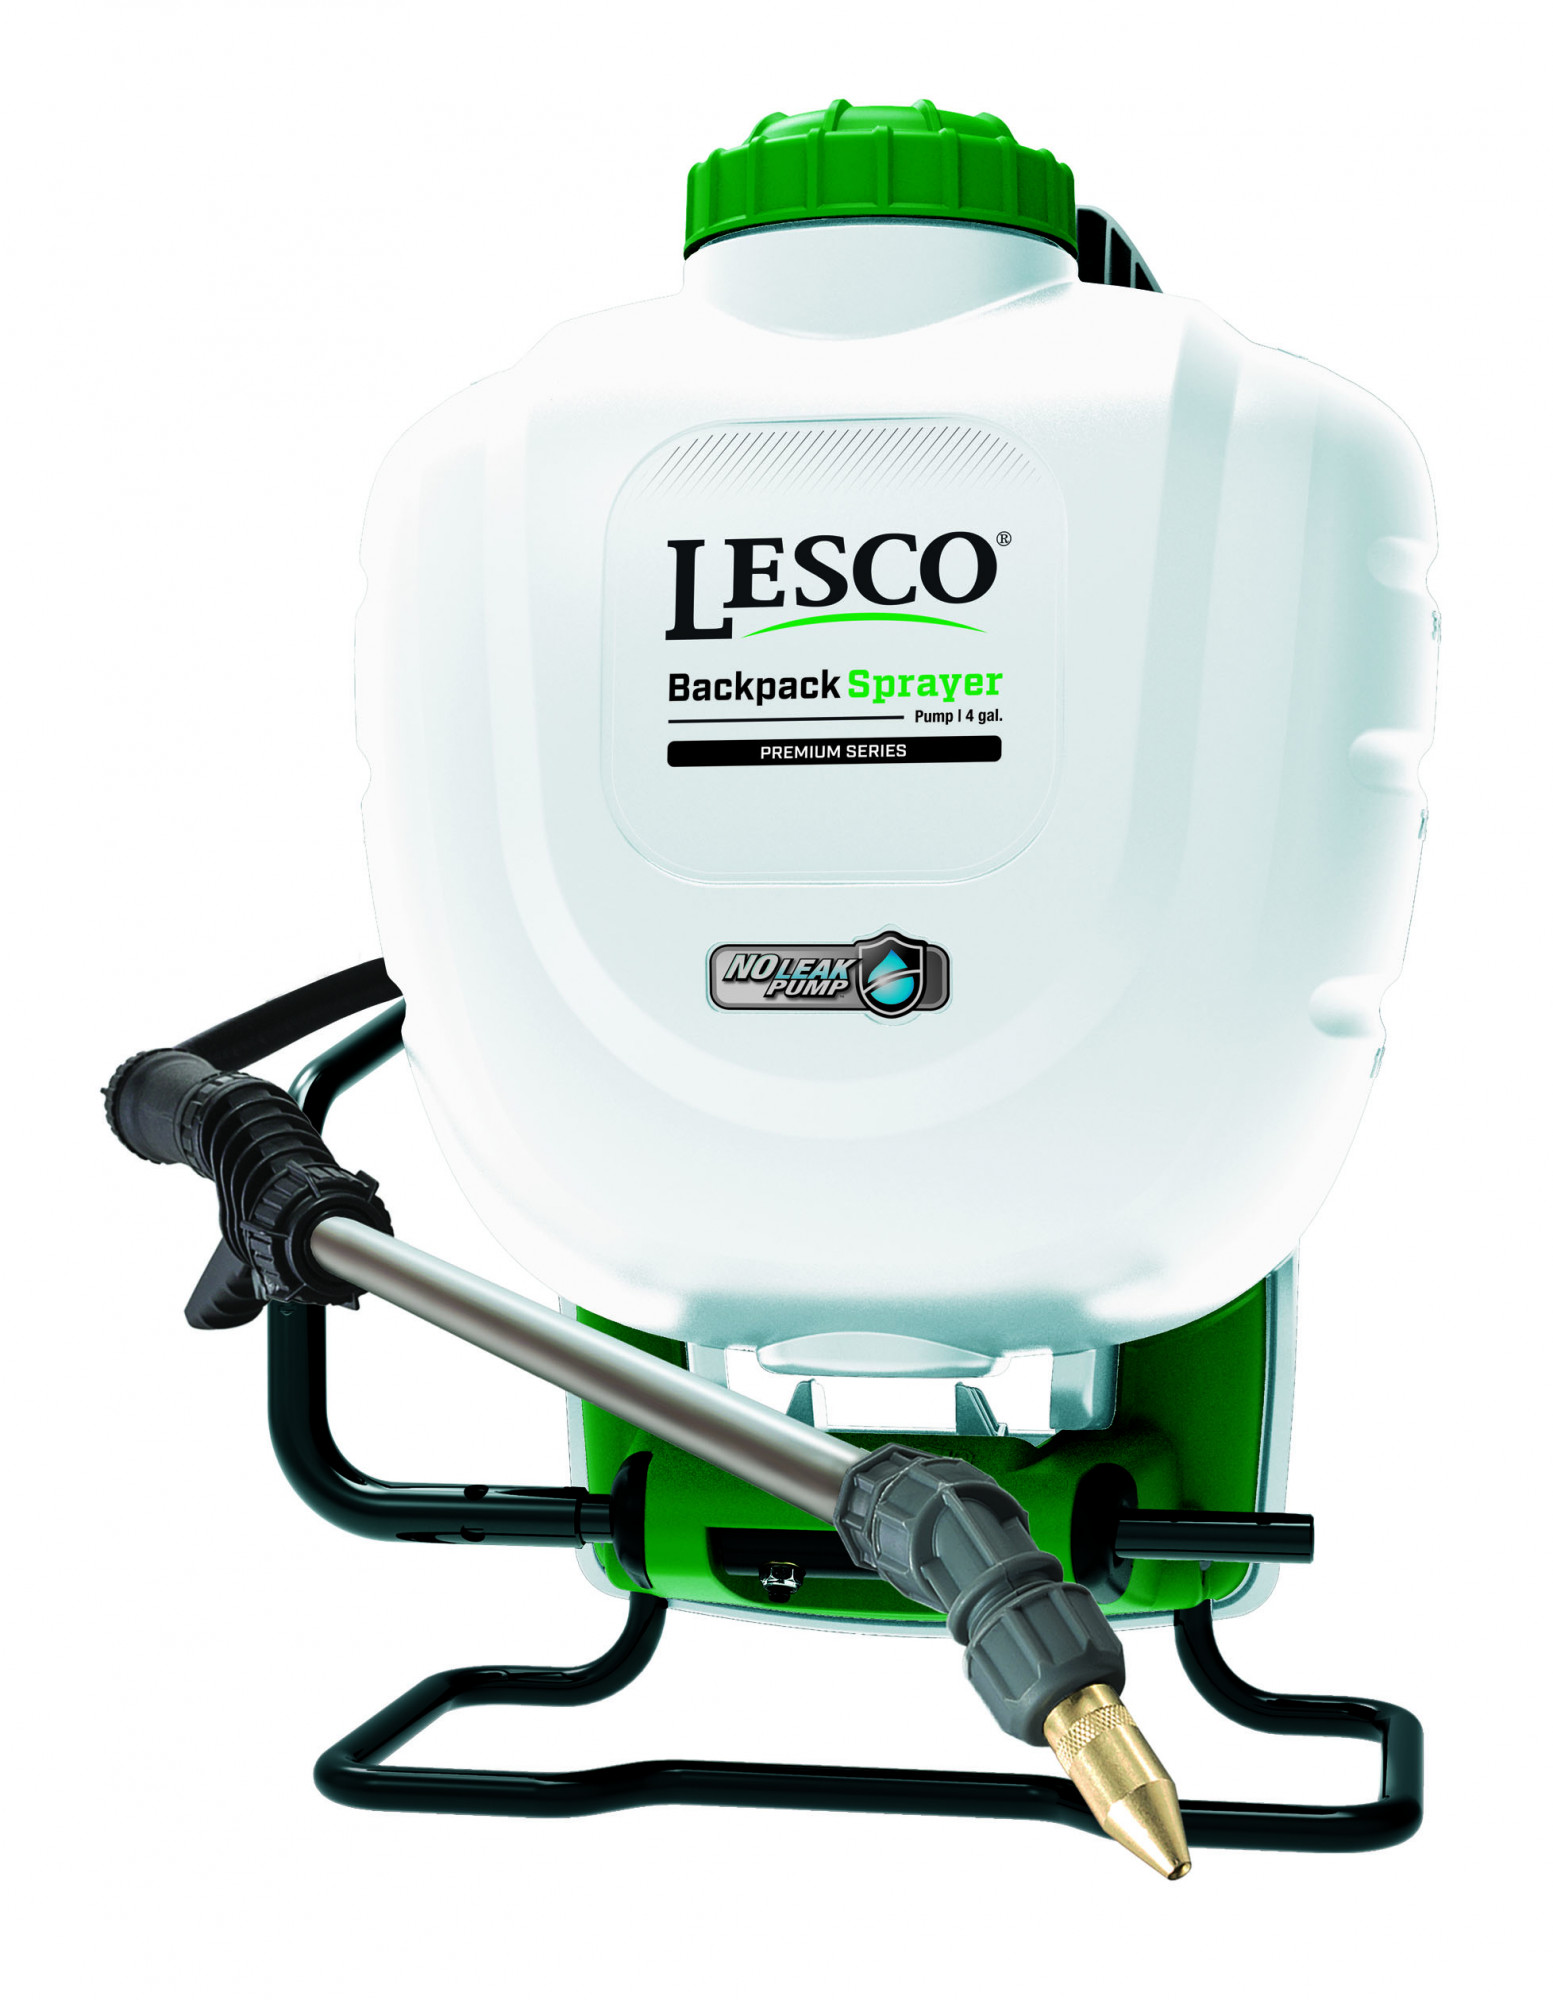 LESCO® Backpack Pump Sprayer, 4 Gal, Premium Series, Model 190344